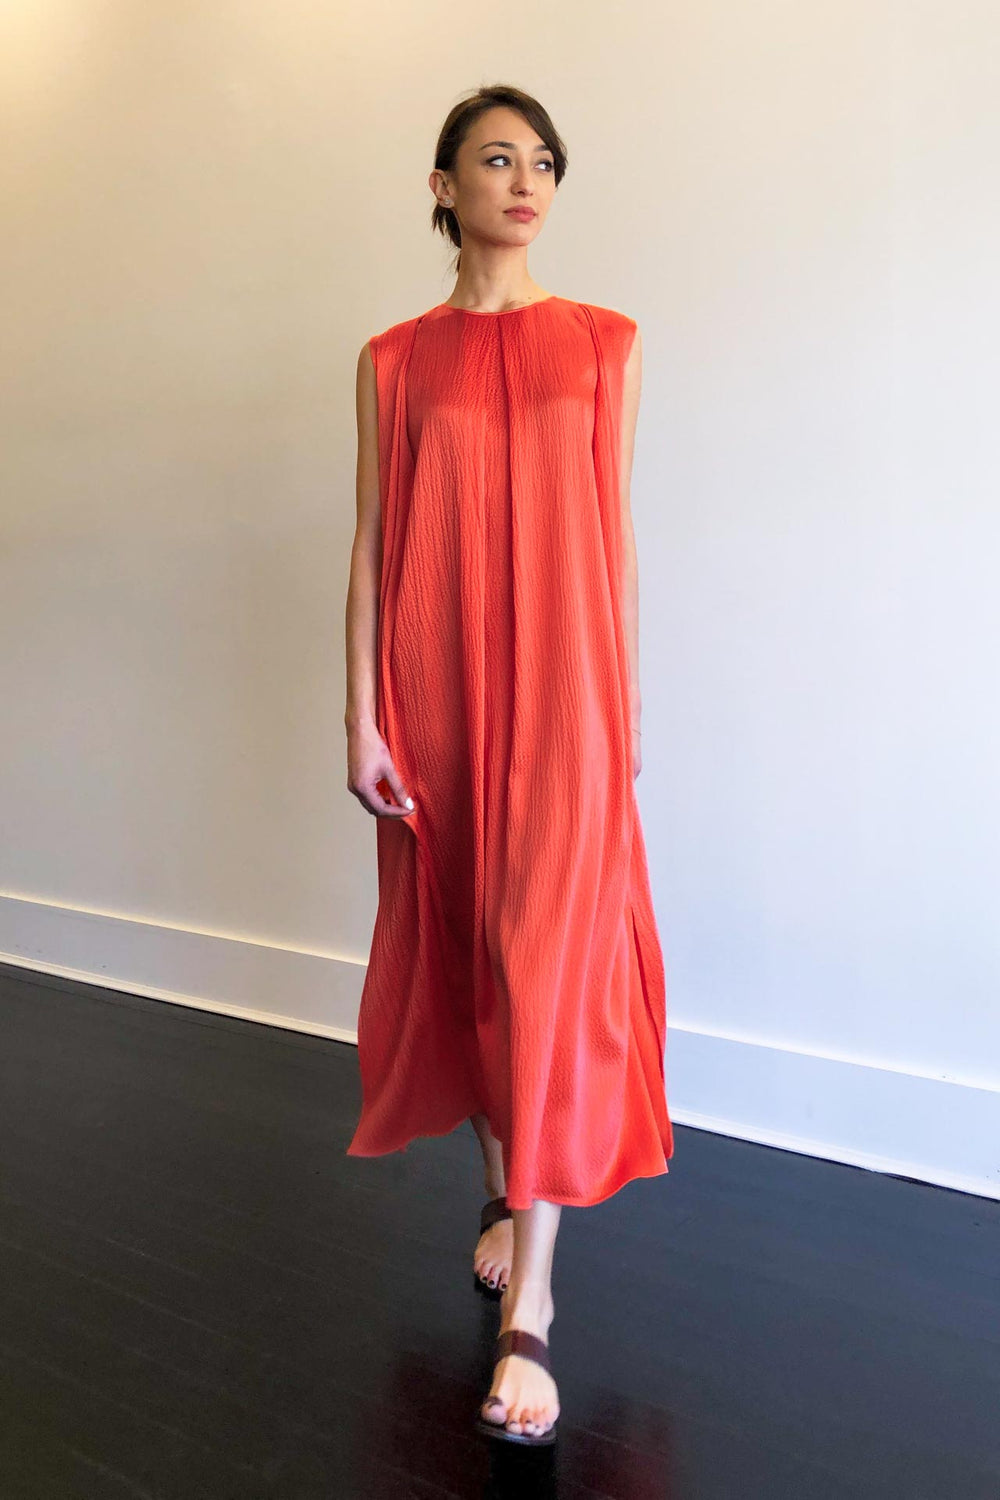 Fashion Designer CARL KAPP collection | Anne Onesize Fits All Silk Dress Red | Sydney Australia